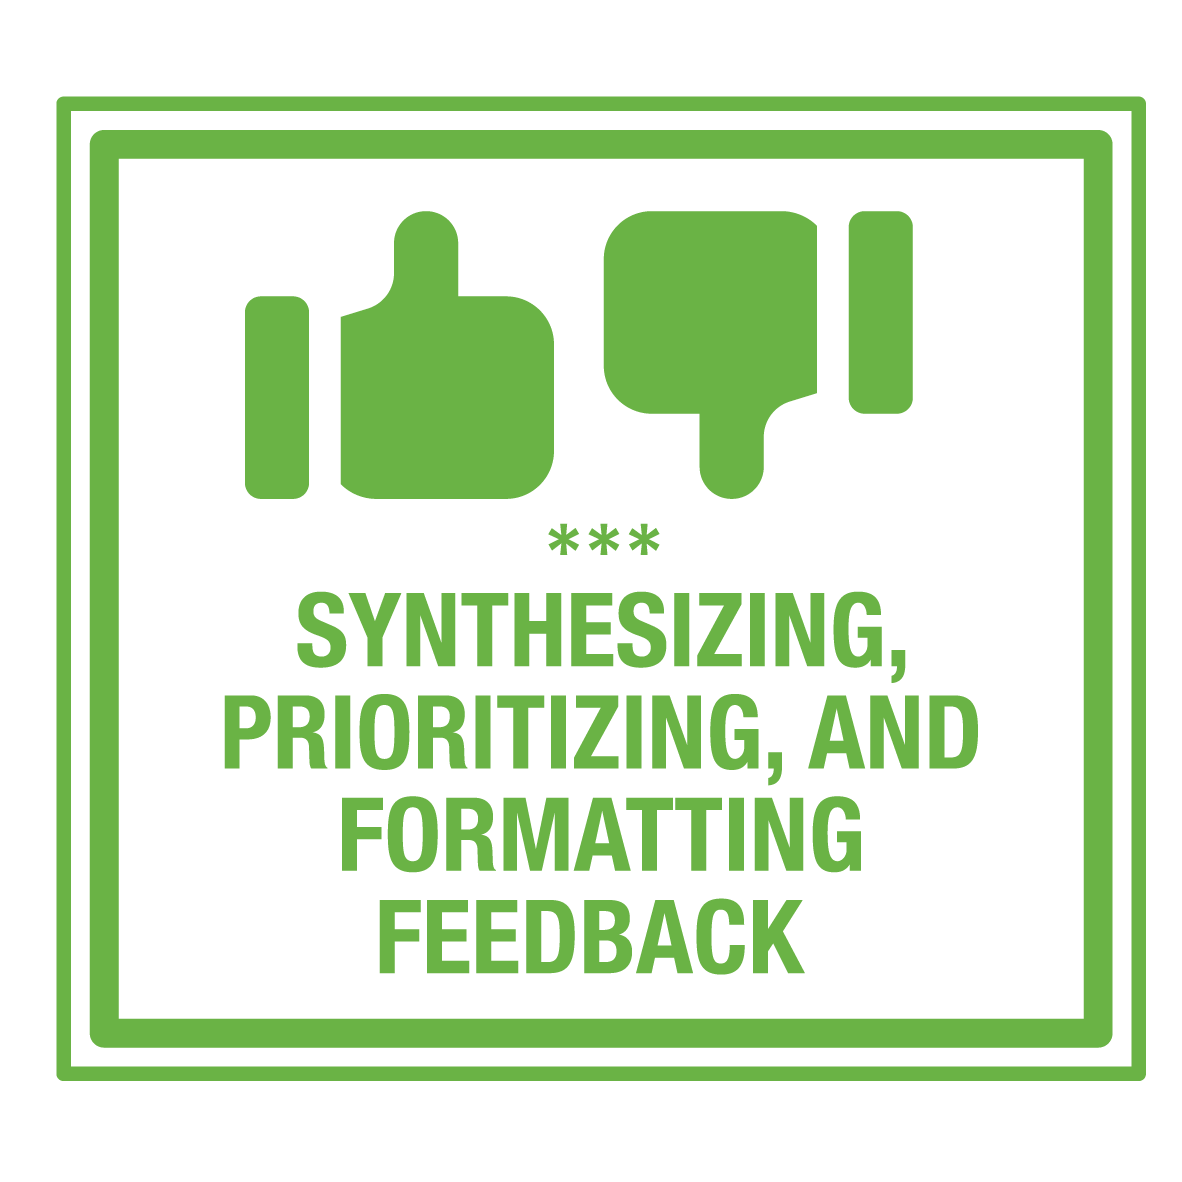 Image of synthesizing and prioritizing feedback AXIS stamp